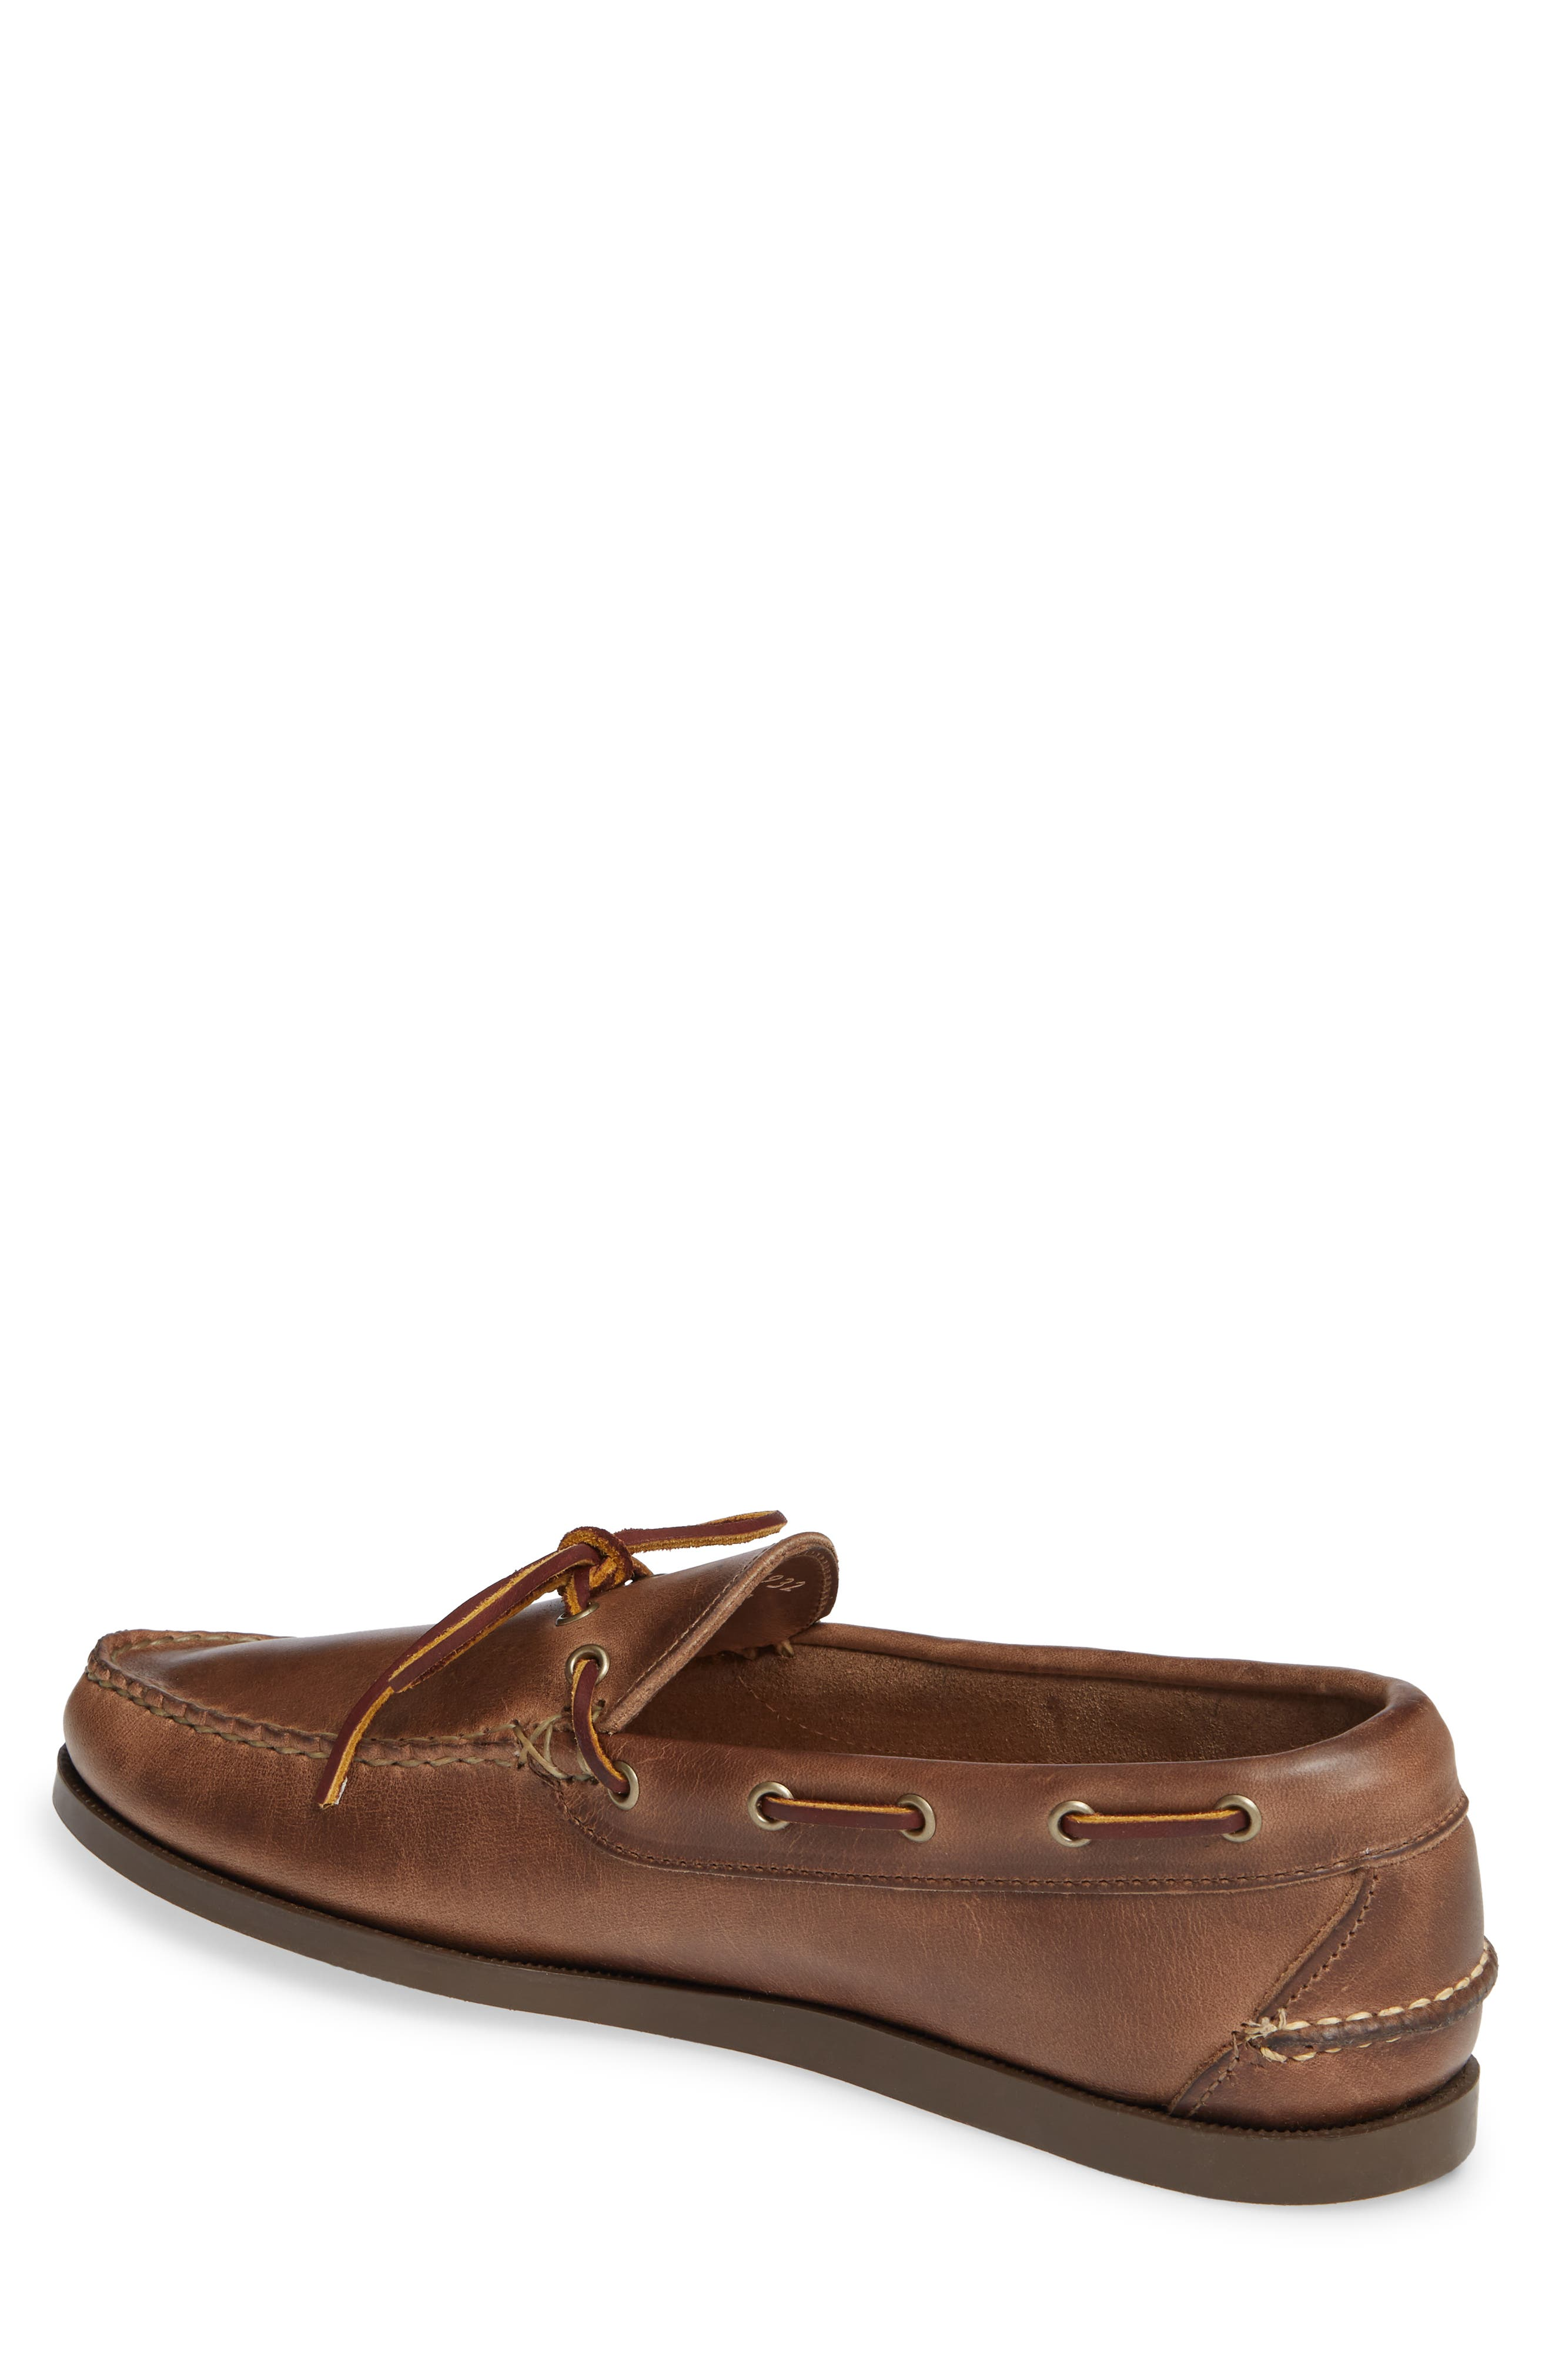 Camp Moccasin,                             Alternate thumbnail 2, color,                             NATURAL LEATHER